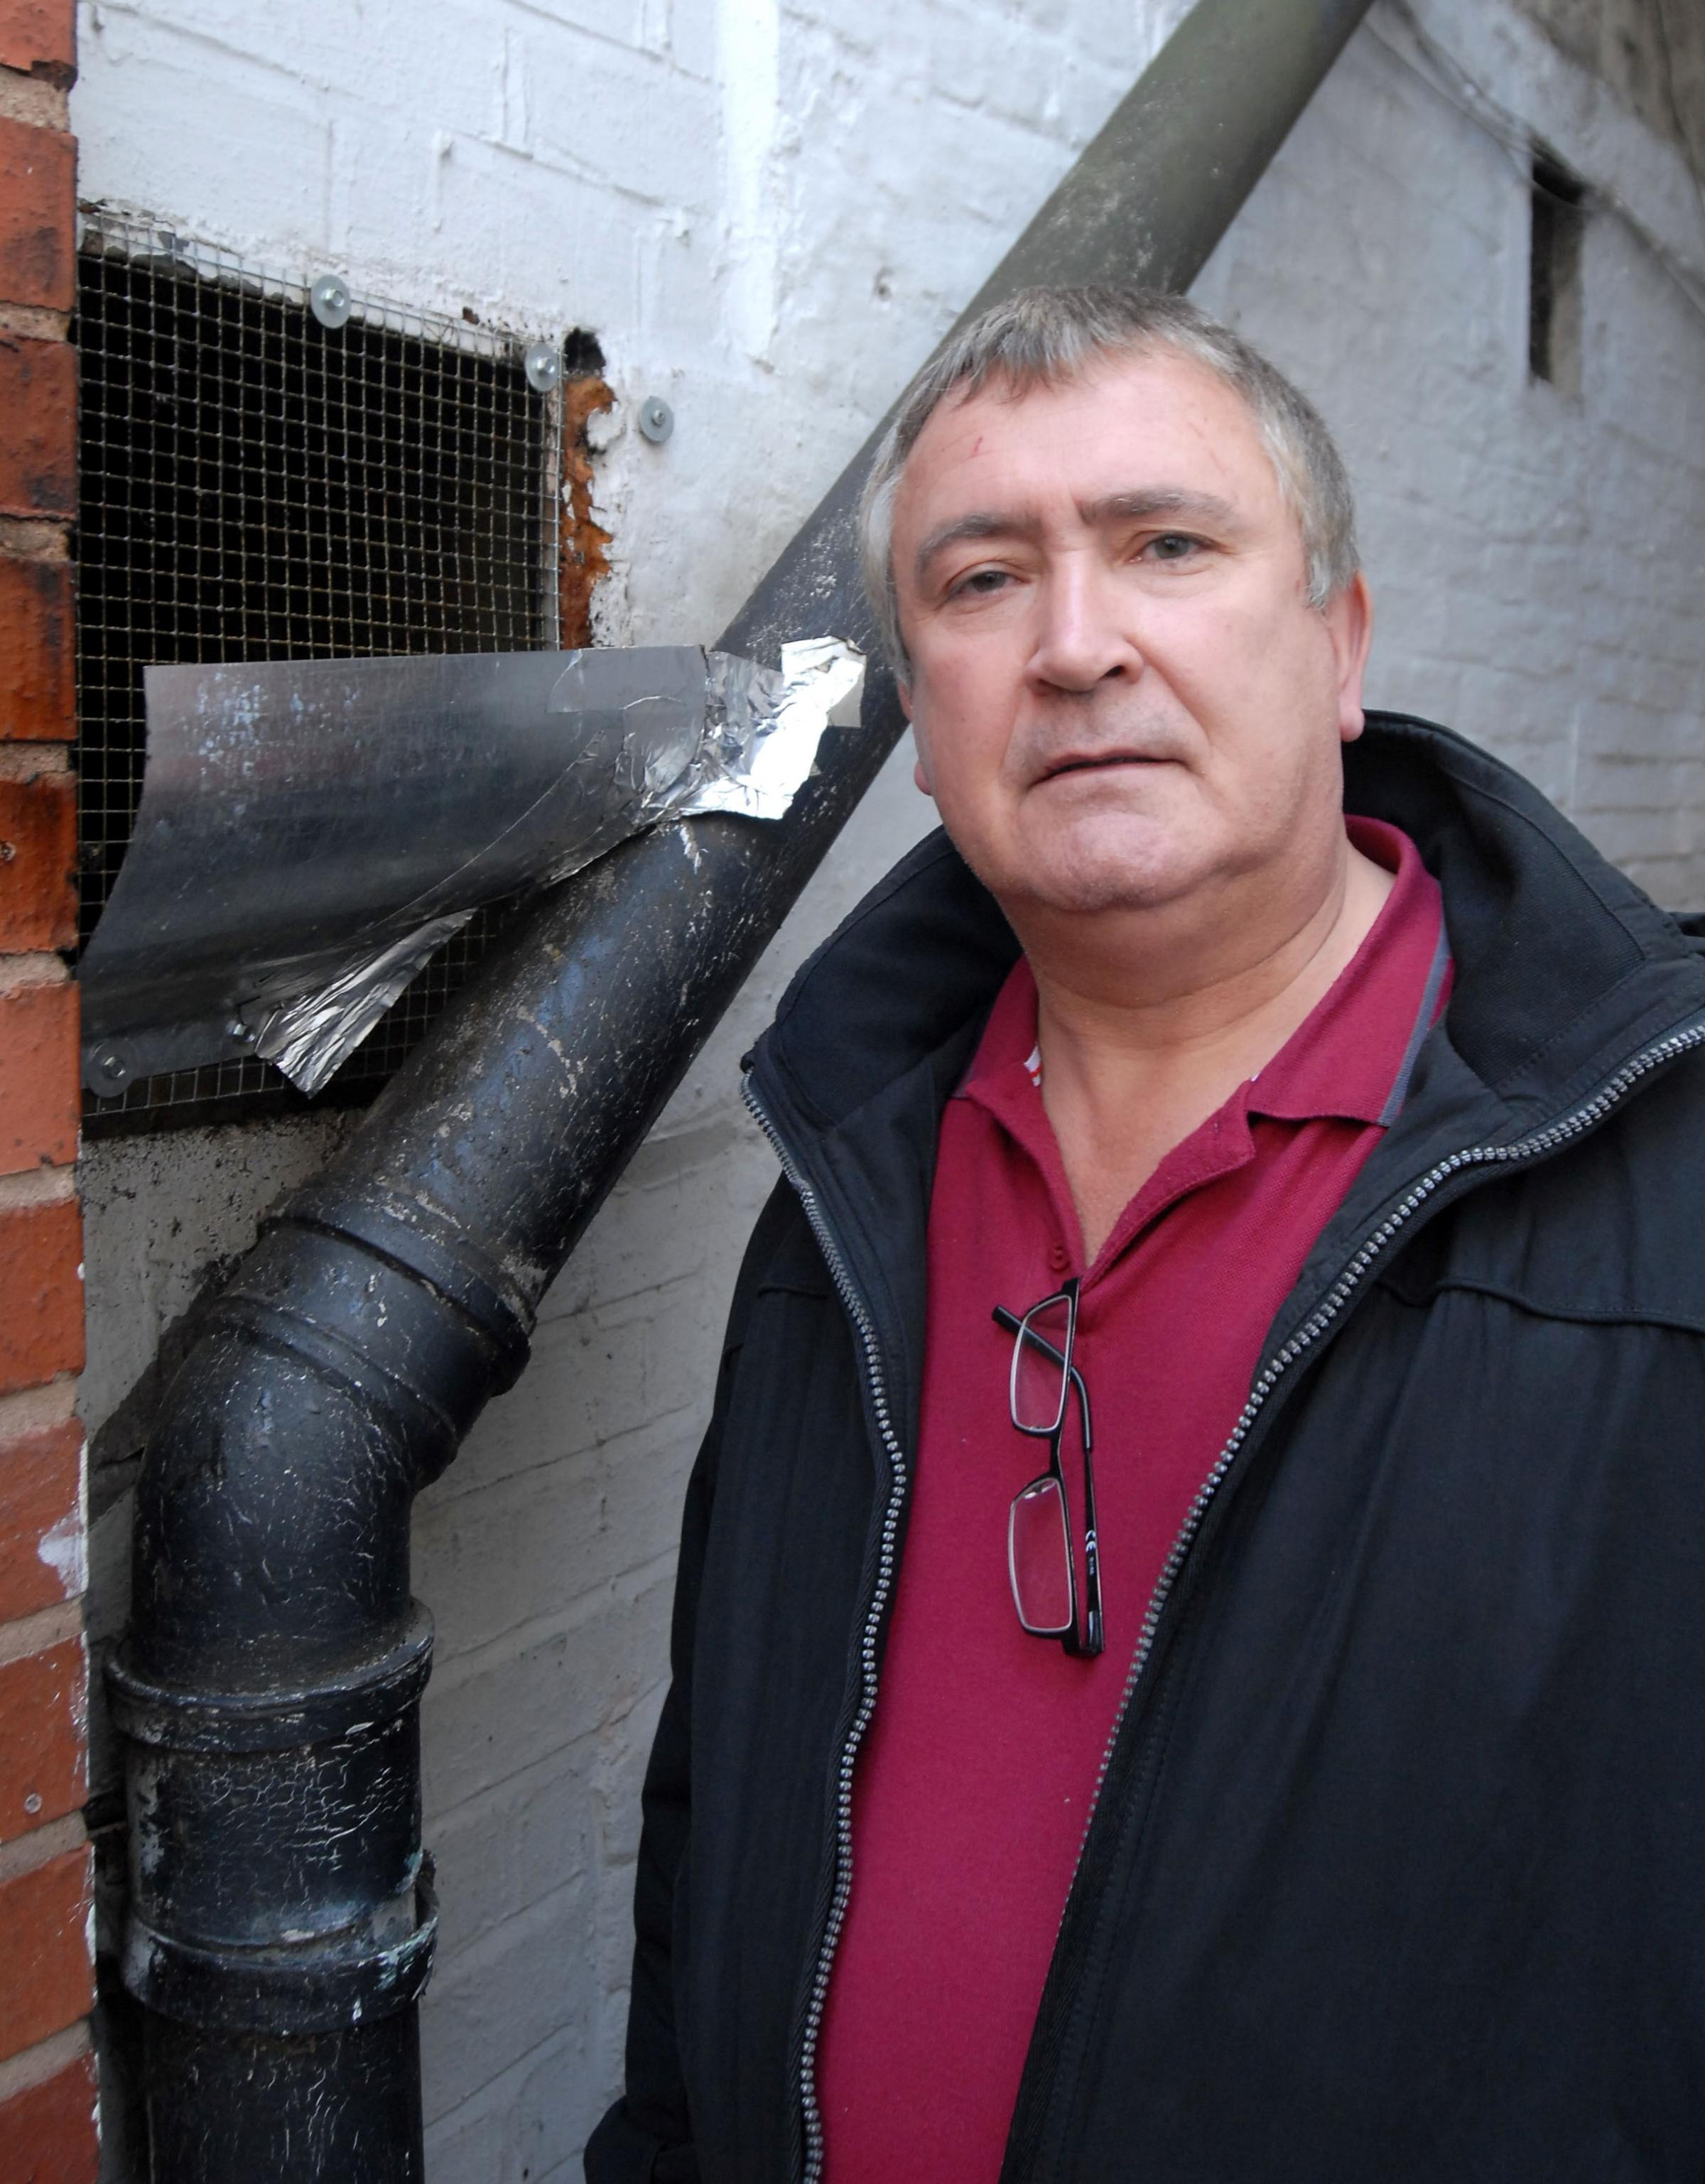 ODOUR COMPLAINT: Adrian Mayall standing next to the extractor fan he is complaining about.